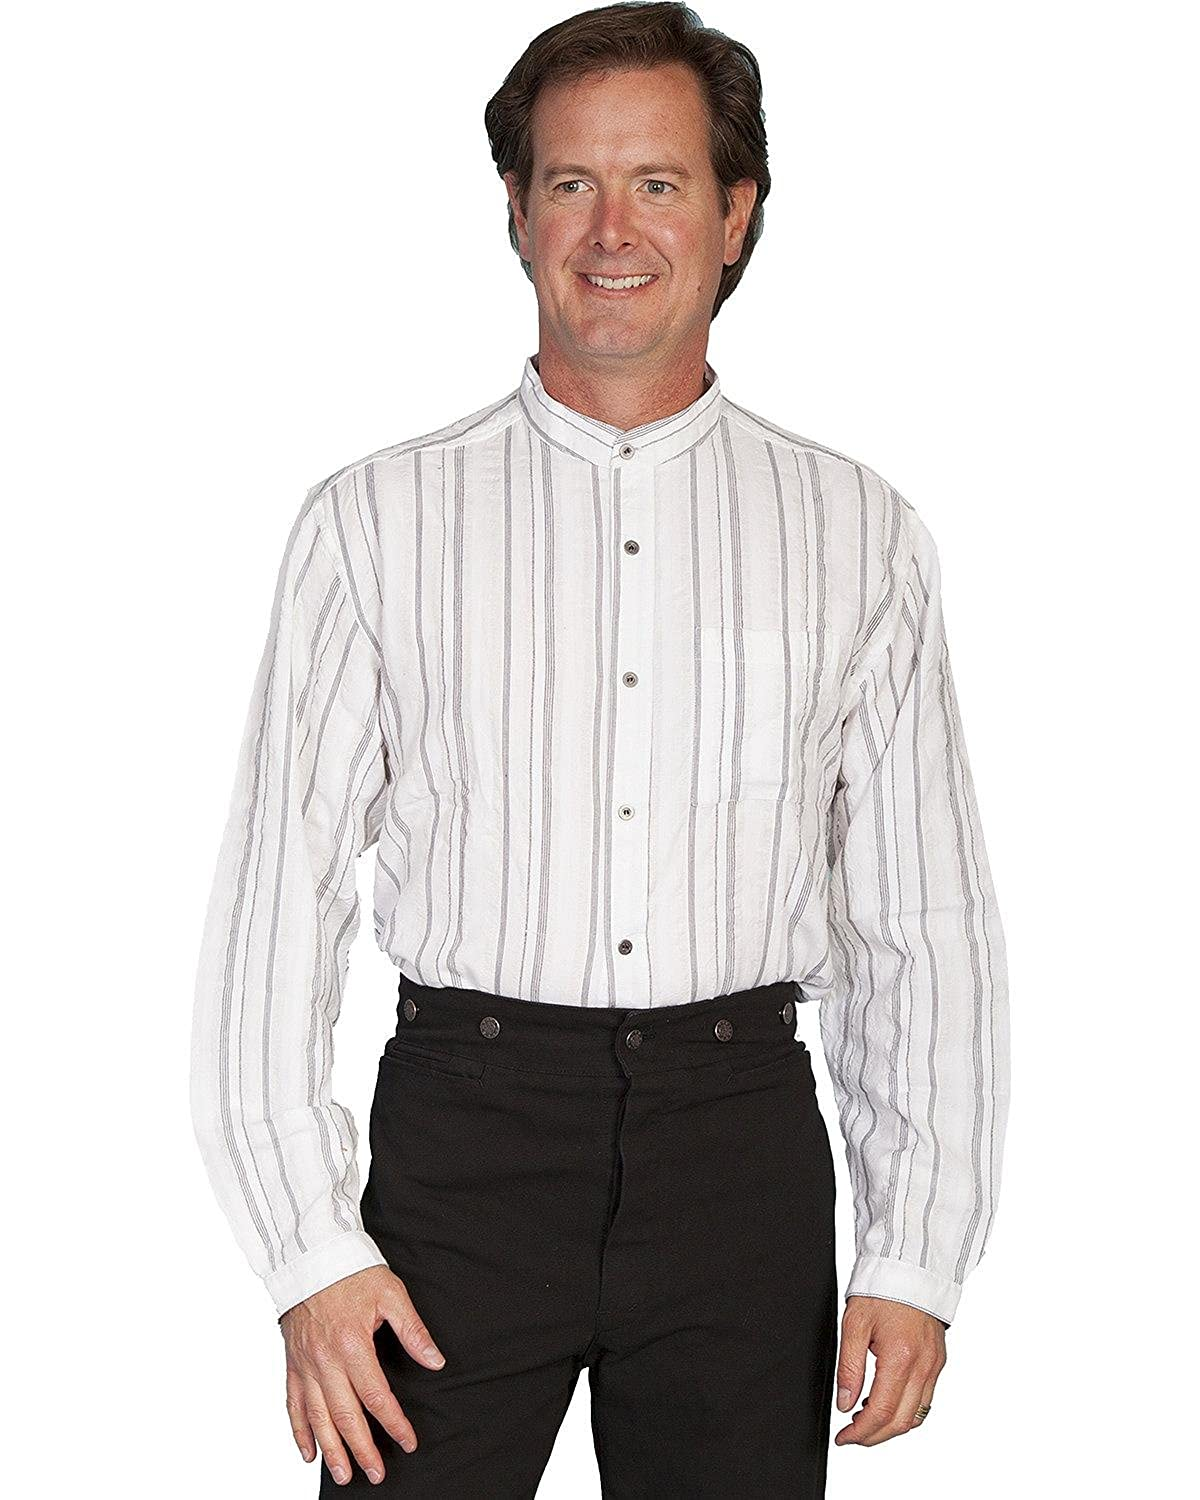 1920s Style Men's Shirts | Peaky Blinders Shirts and Collars Scully One of Our Best Selling Shirts - White $49.99 AT vintagedancer.com